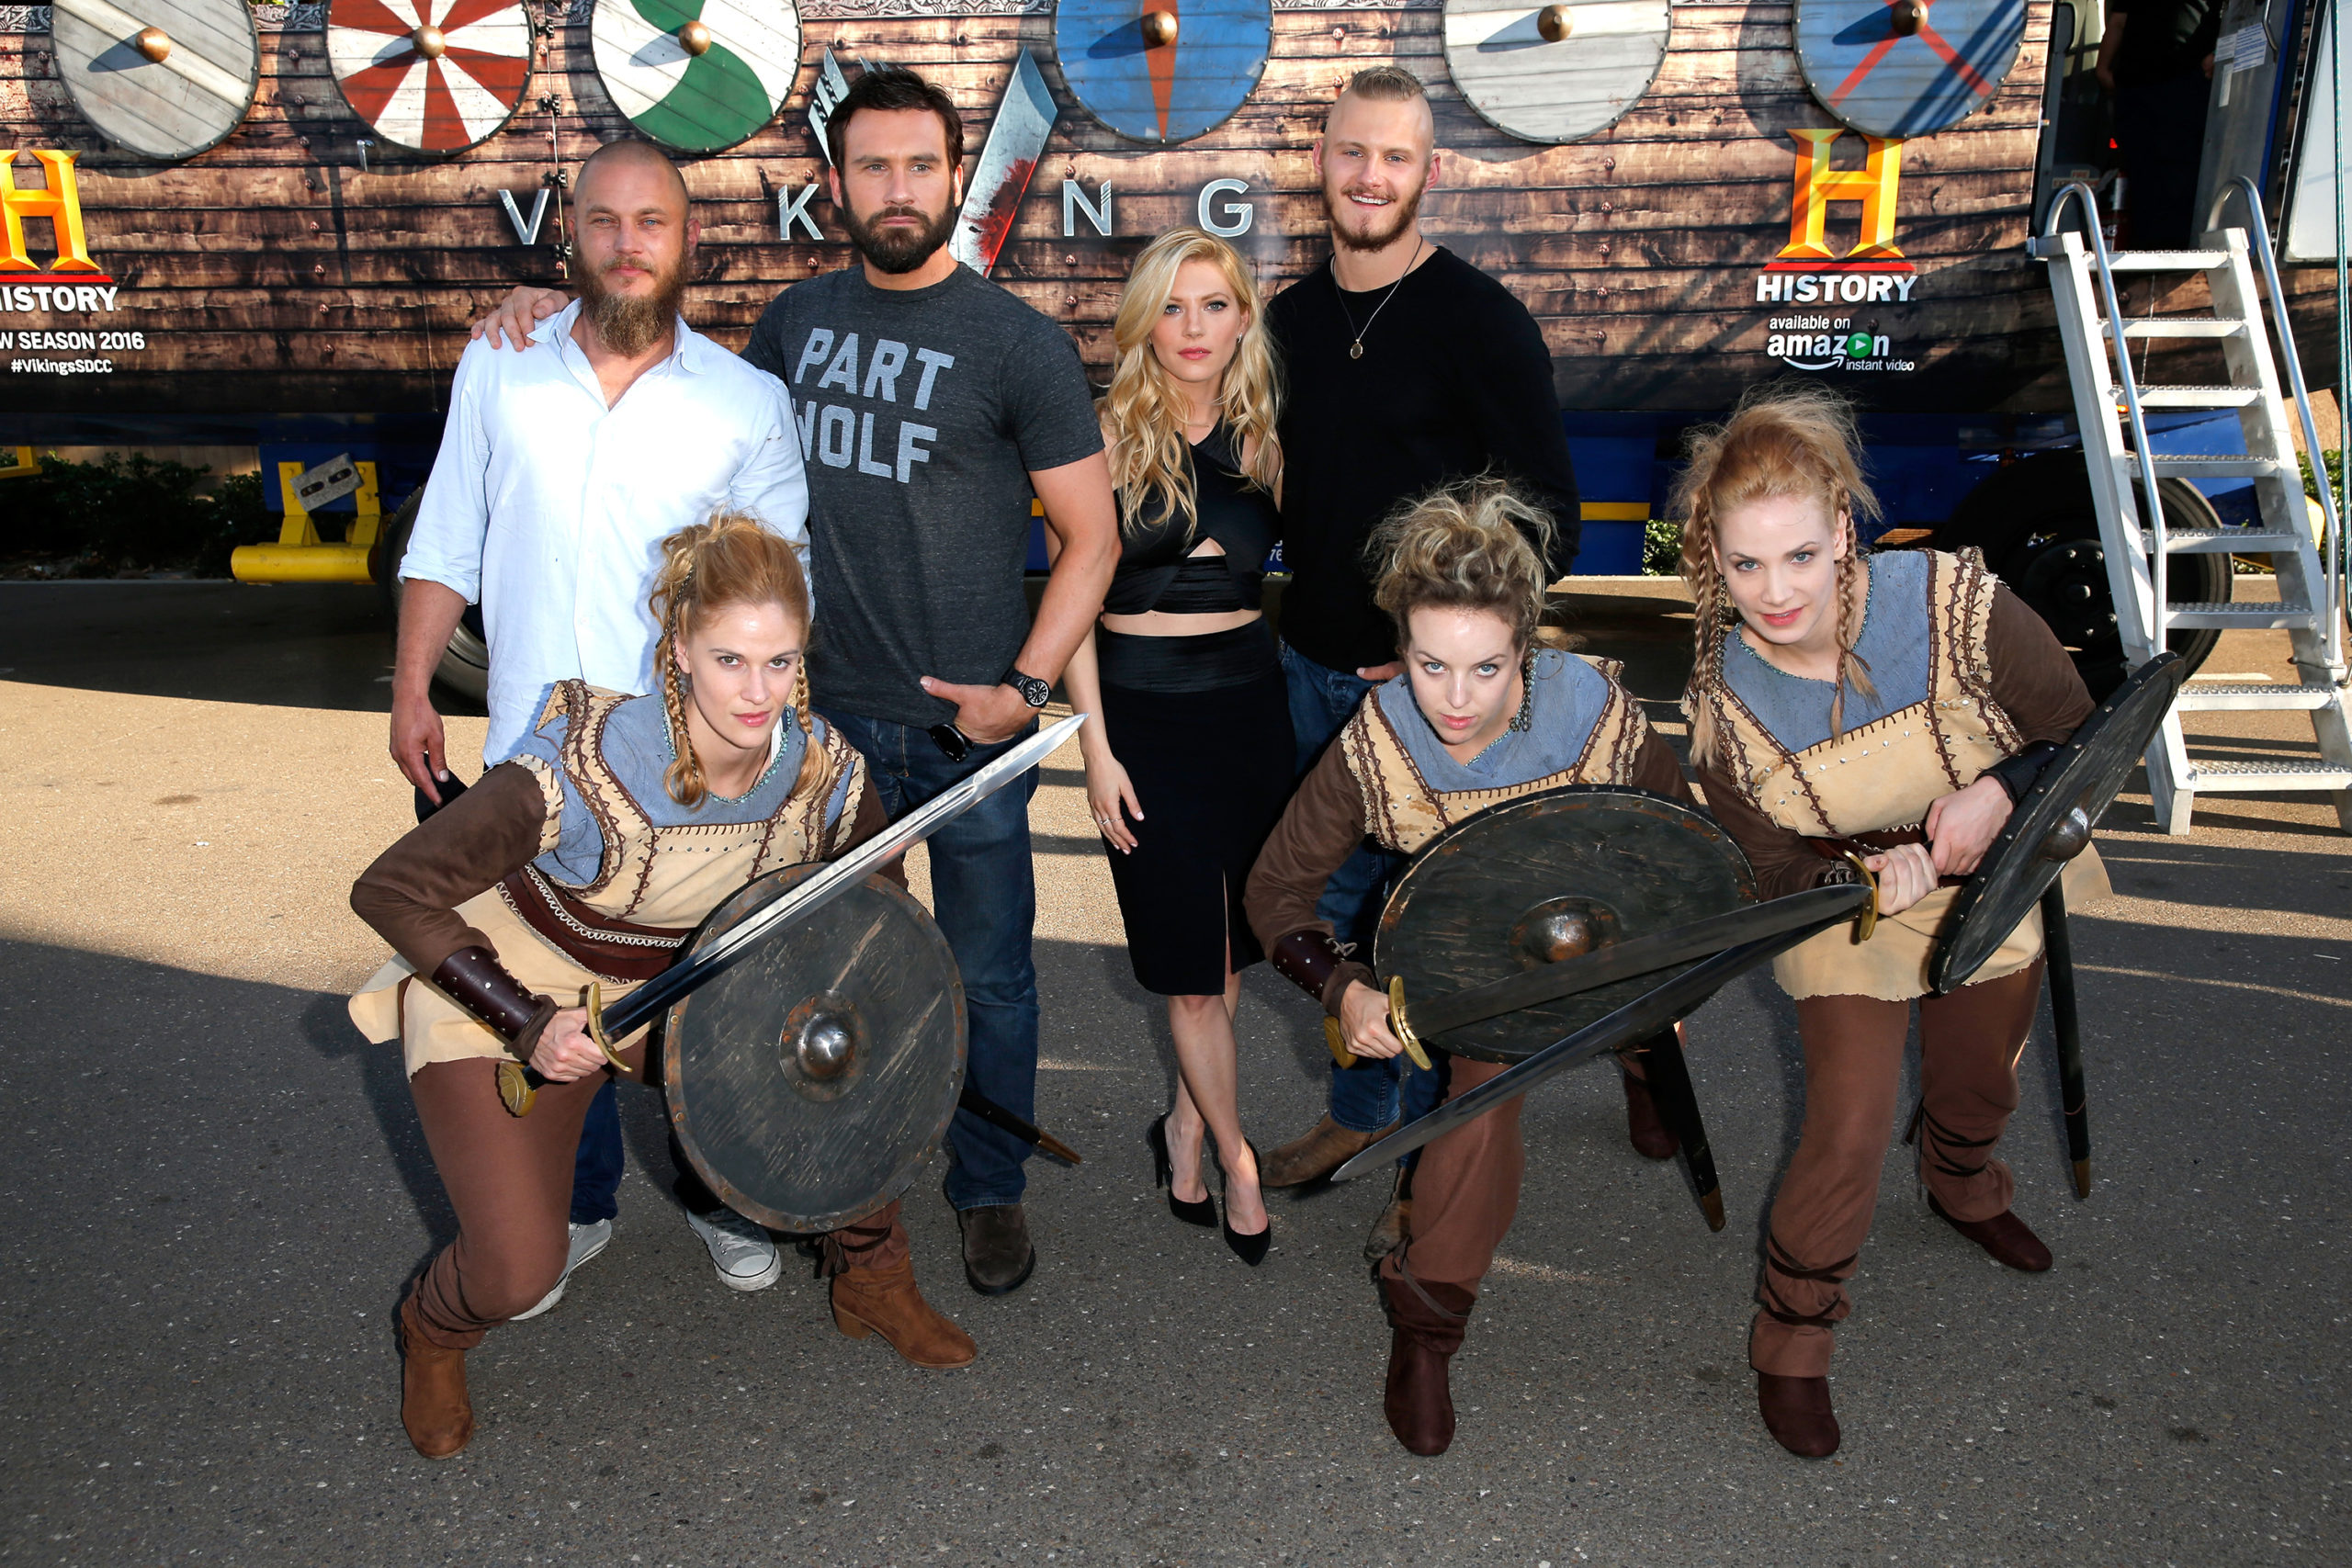 Vikings Cast at Comic-Con